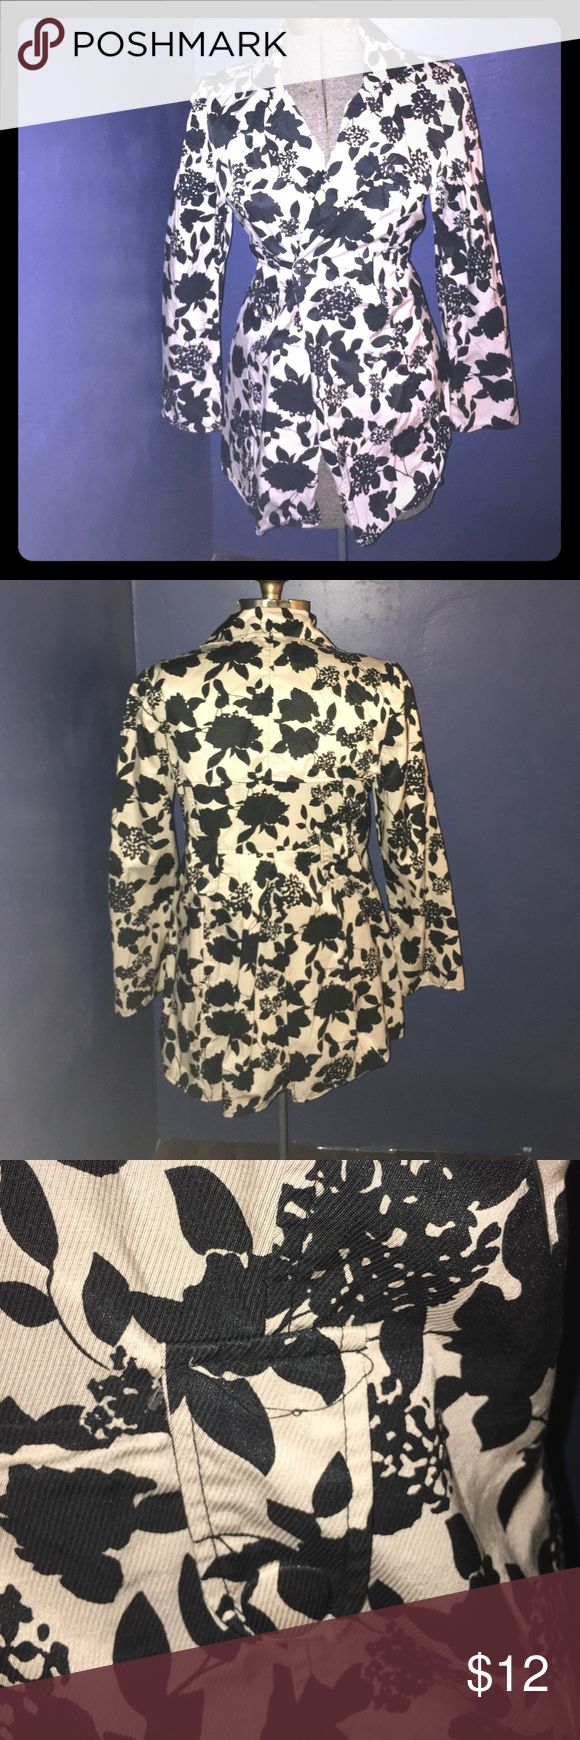 Charlotte Russe light black floral spring jacket Charlotte Russe light spring jacket missing its original belt (discounted for that reason) but easy belt replacement would be a general black leather or fabric belt. Extra buttons located on the jacket. Charlotte Russe Jackets & Coats Trench Coats